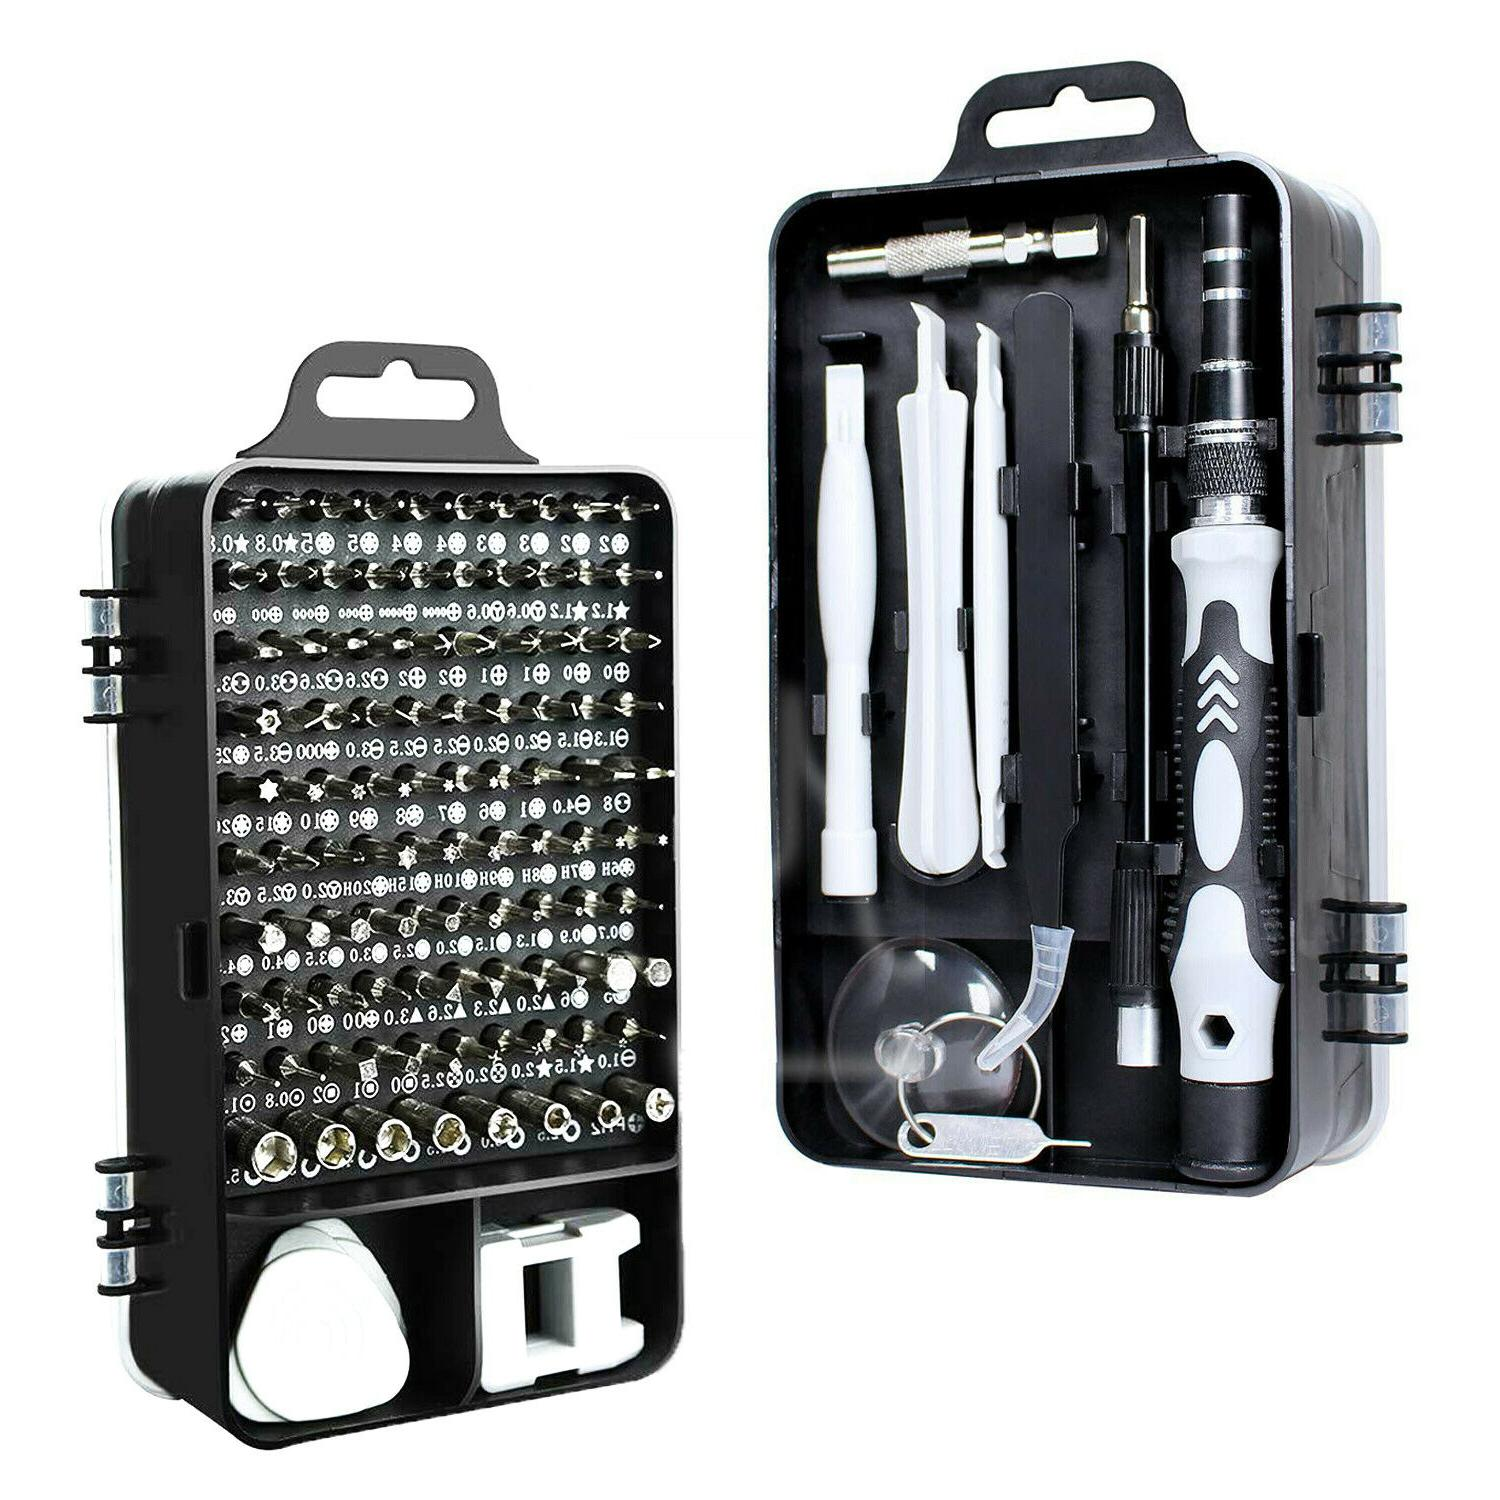 110 in 1 magnetic precision screwdriver set